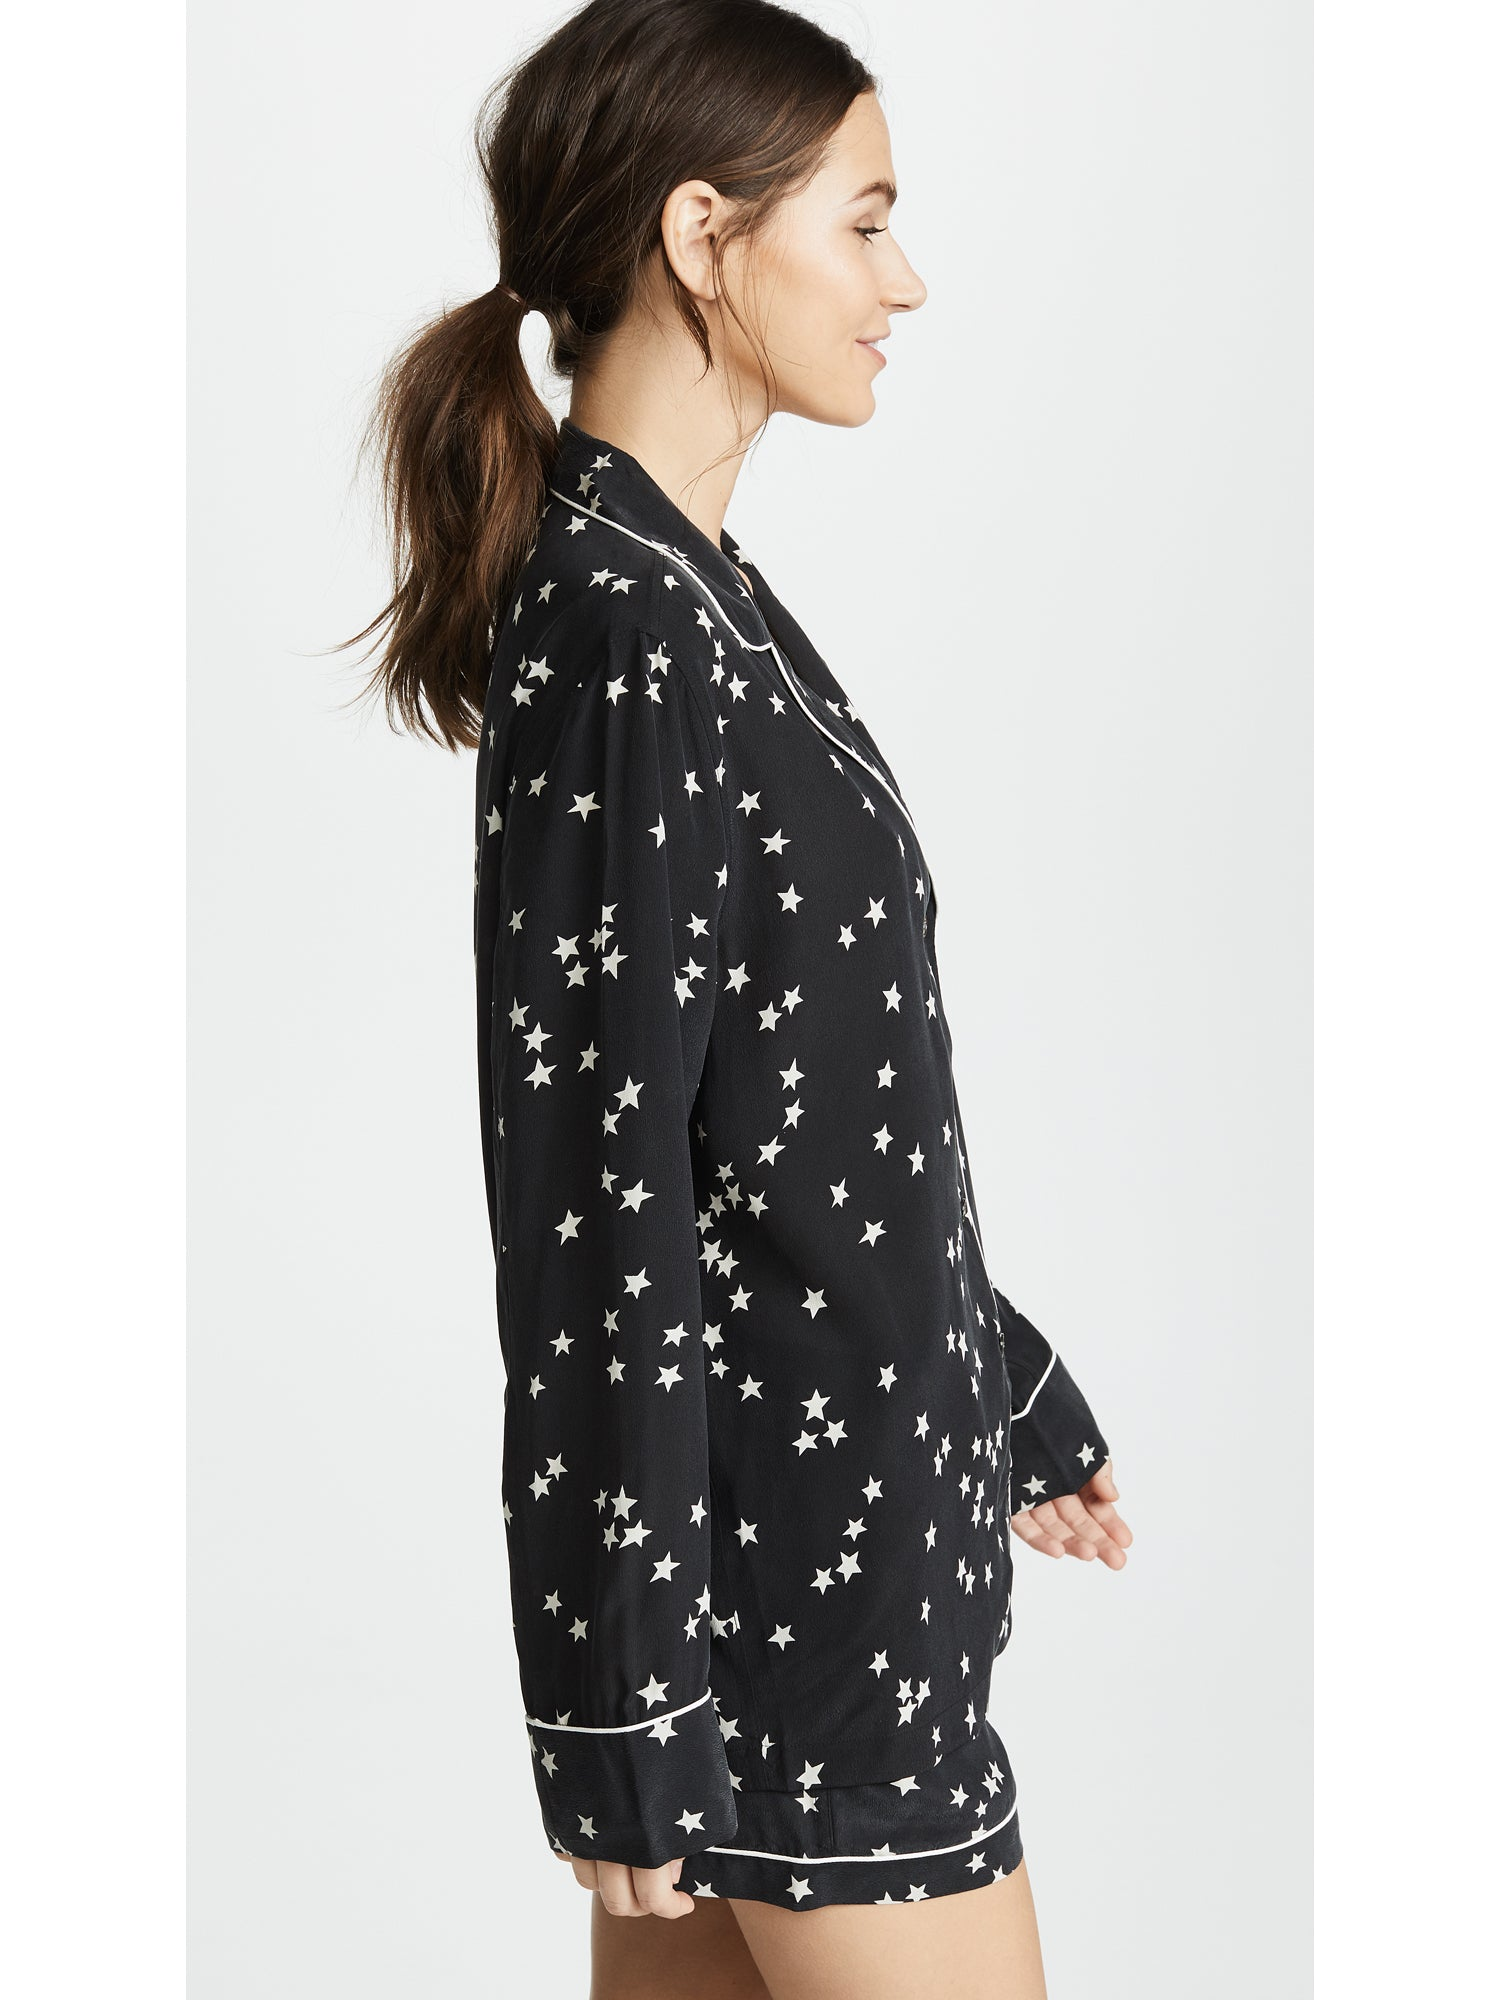 Equipment Lillian Starry Night PJ Pajama Set Black Star Print | TILDEN